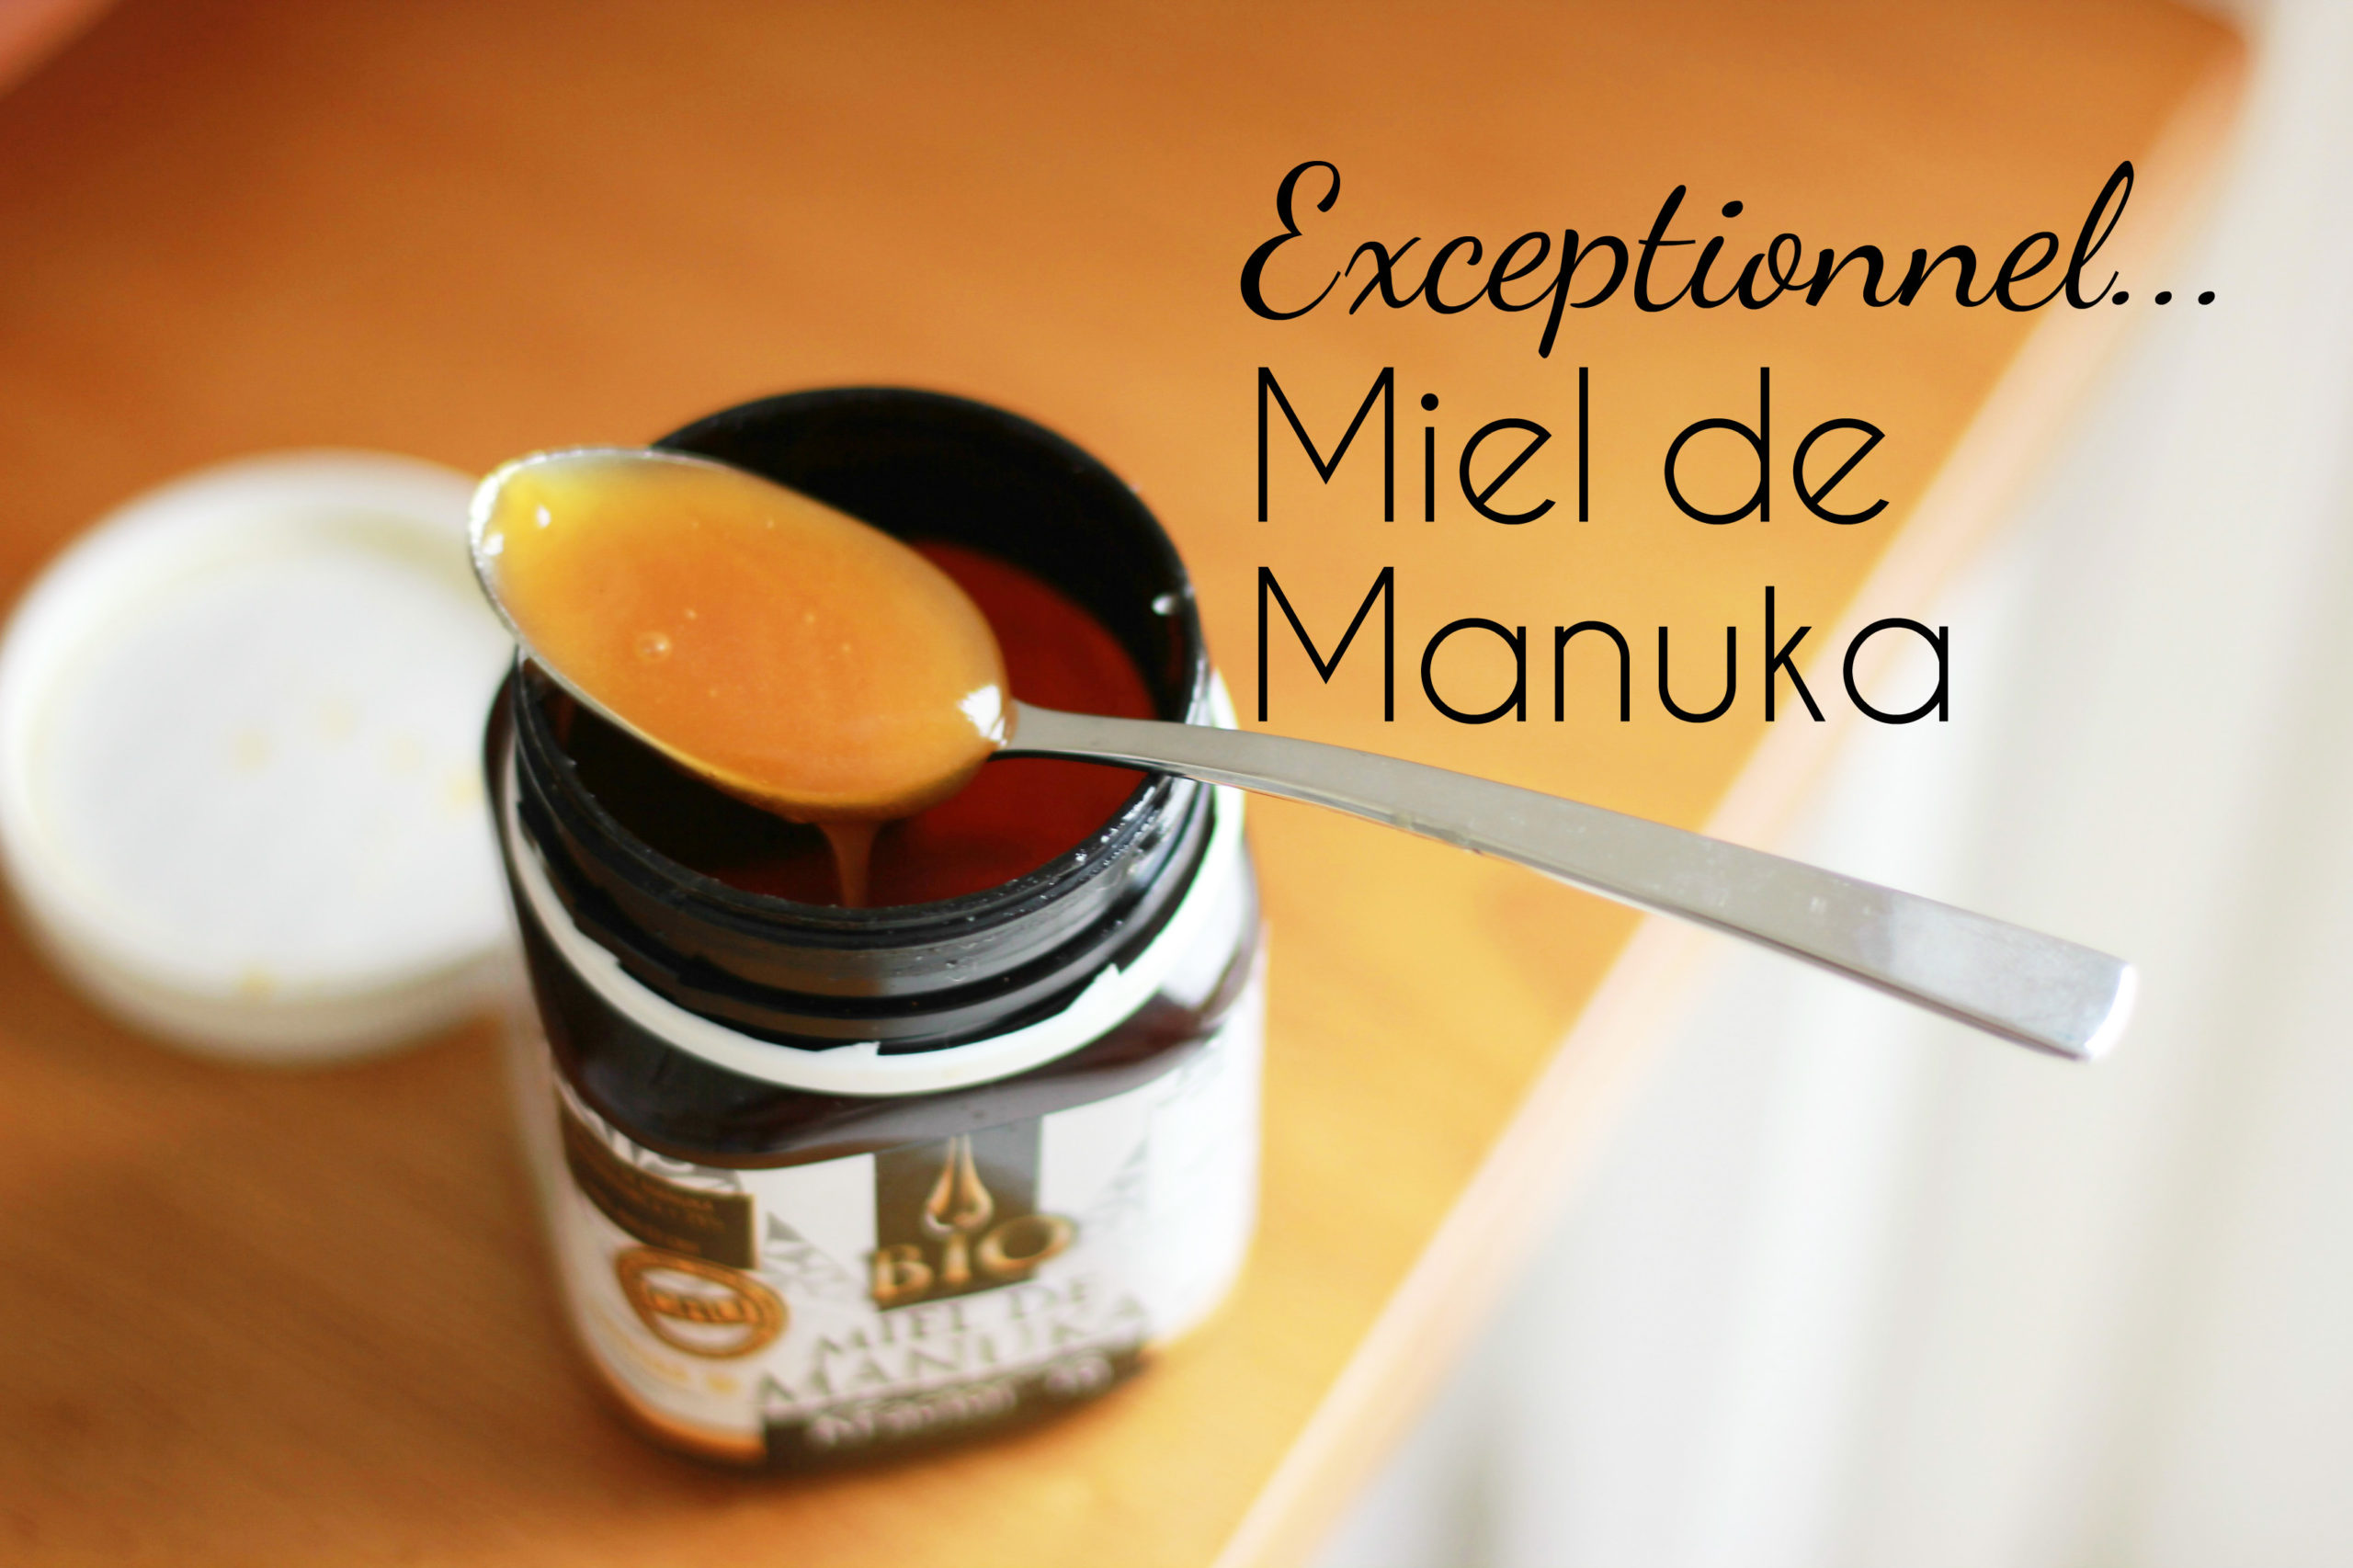 Voici pourquoi vous devez avoir du miel de manuka chez vous scaled - Here's why you should have manuka honey at home